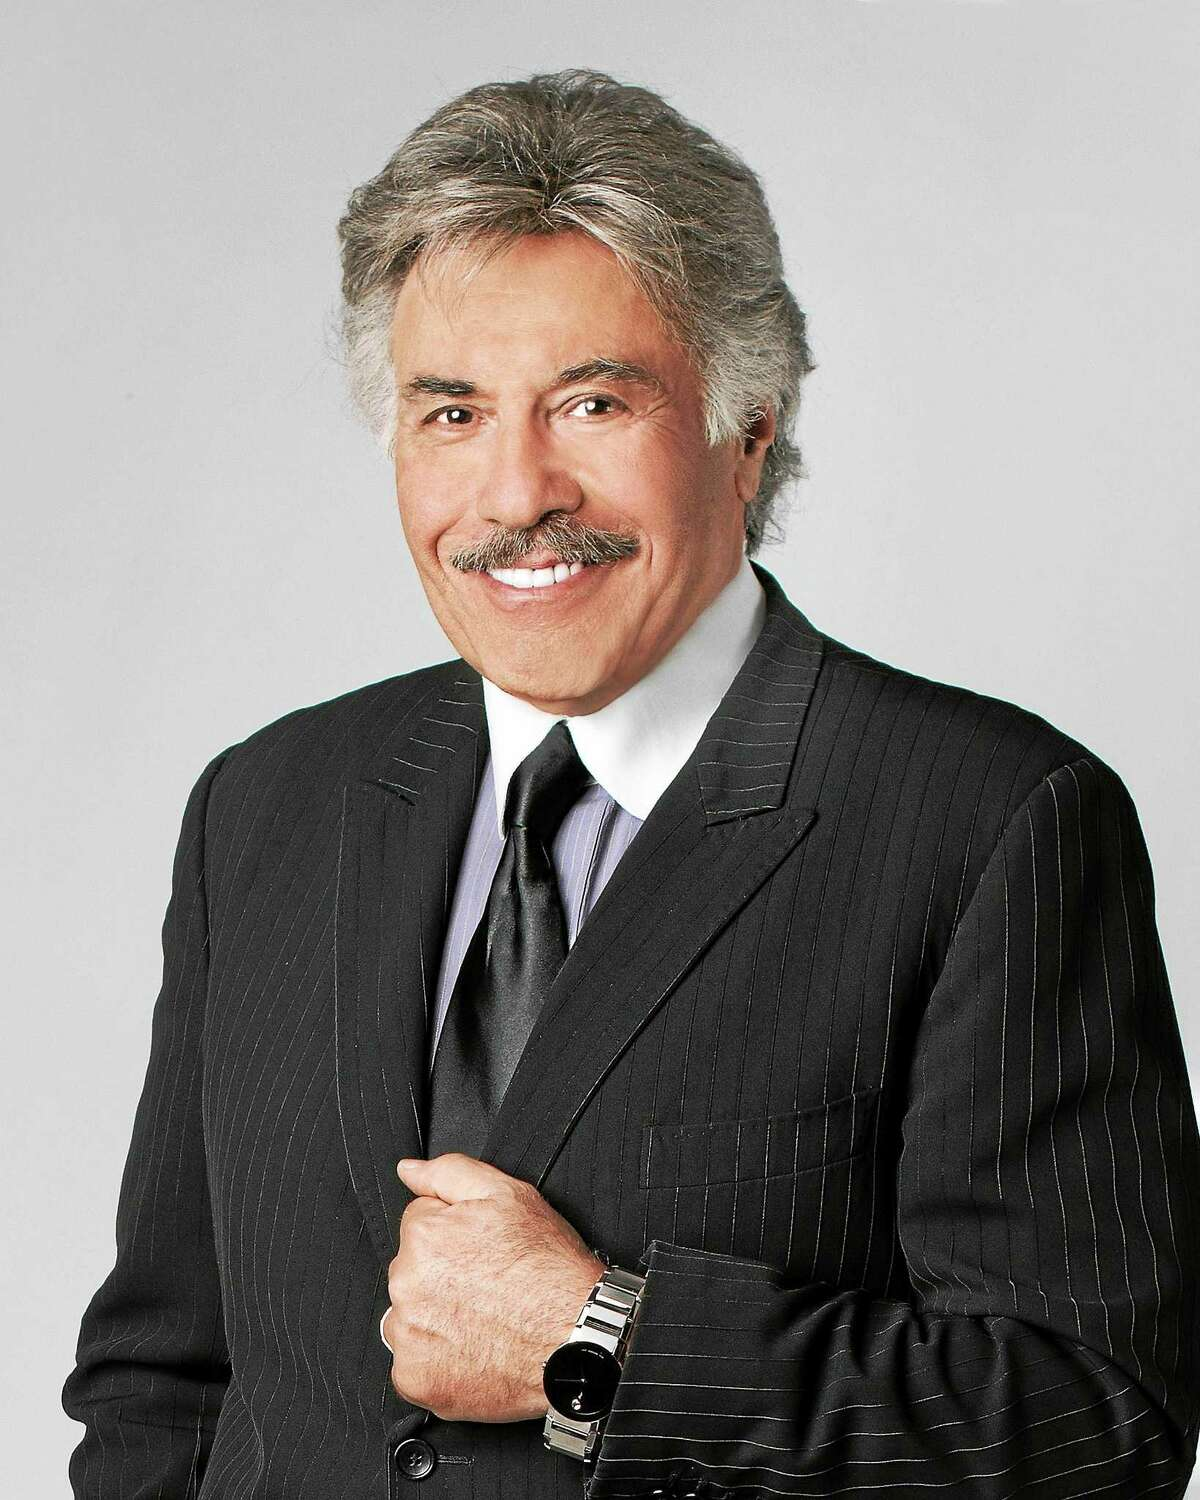 Tony Orlando, best known for singing about a yellow ribbon tied around a certain oak tree, headlines the East Haven Fall Festival Saturday night.